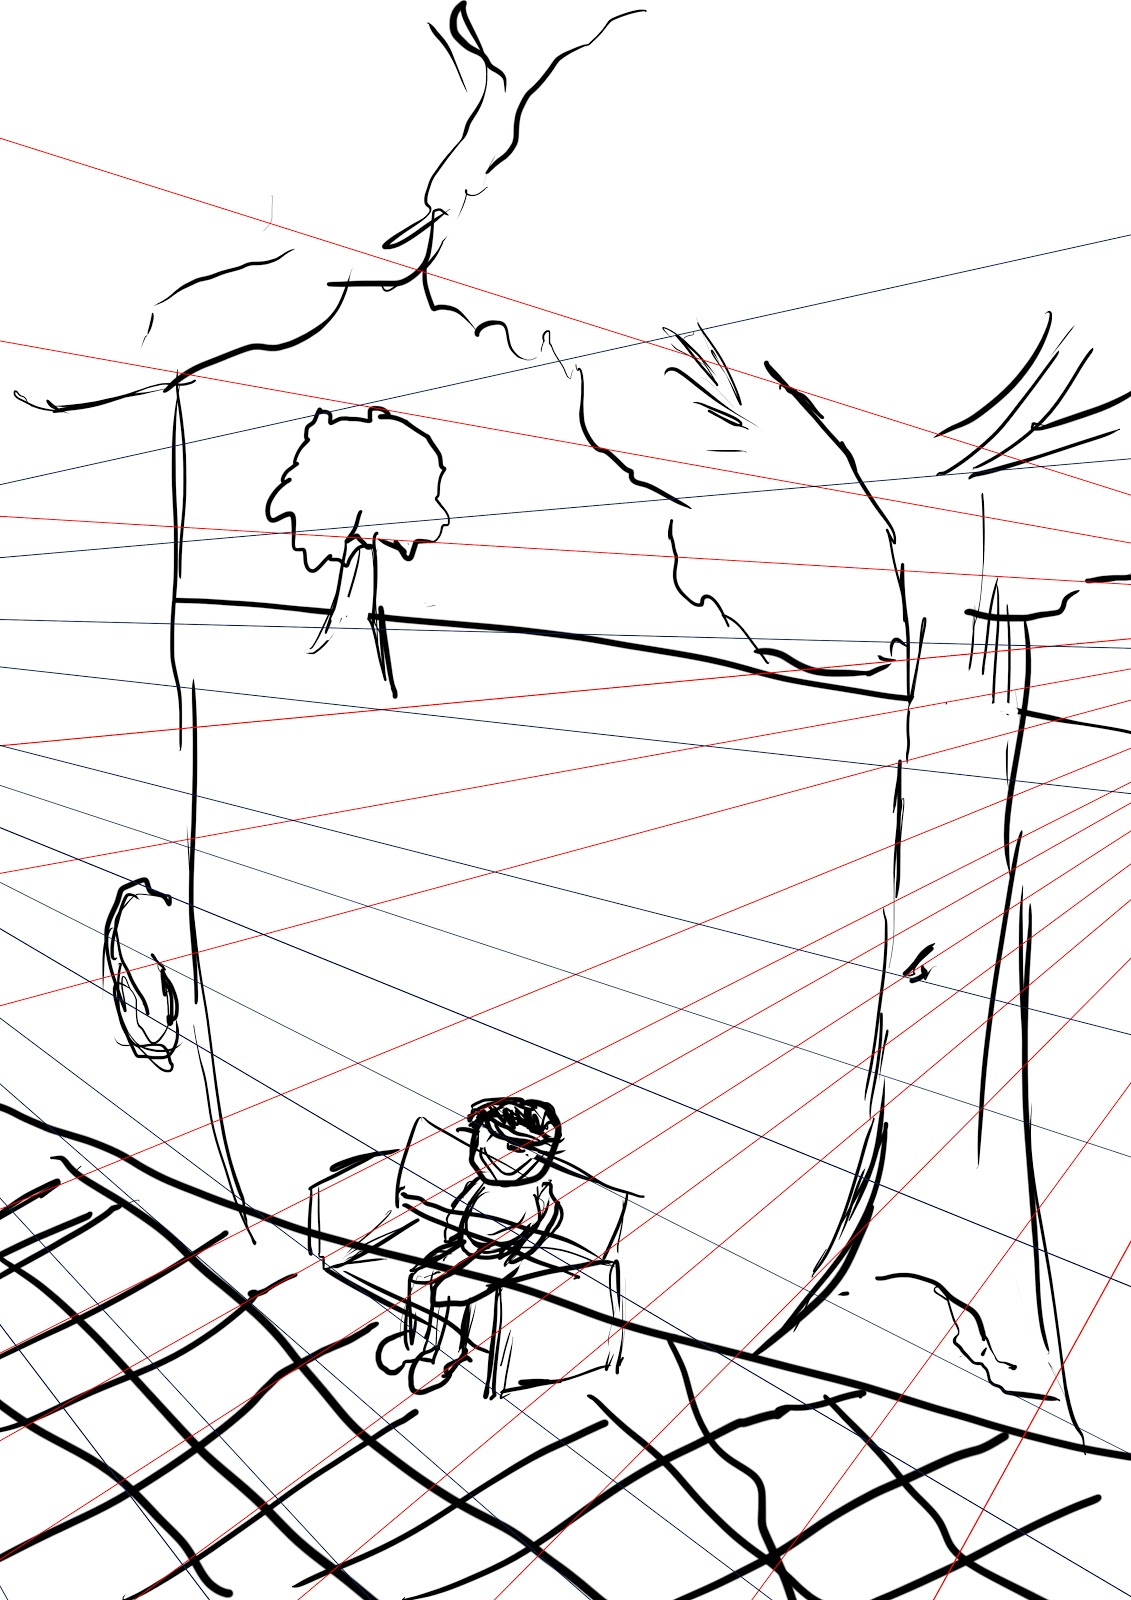 Drawing Lines With Tablet : Graphics tablet perspective drawing for games yr